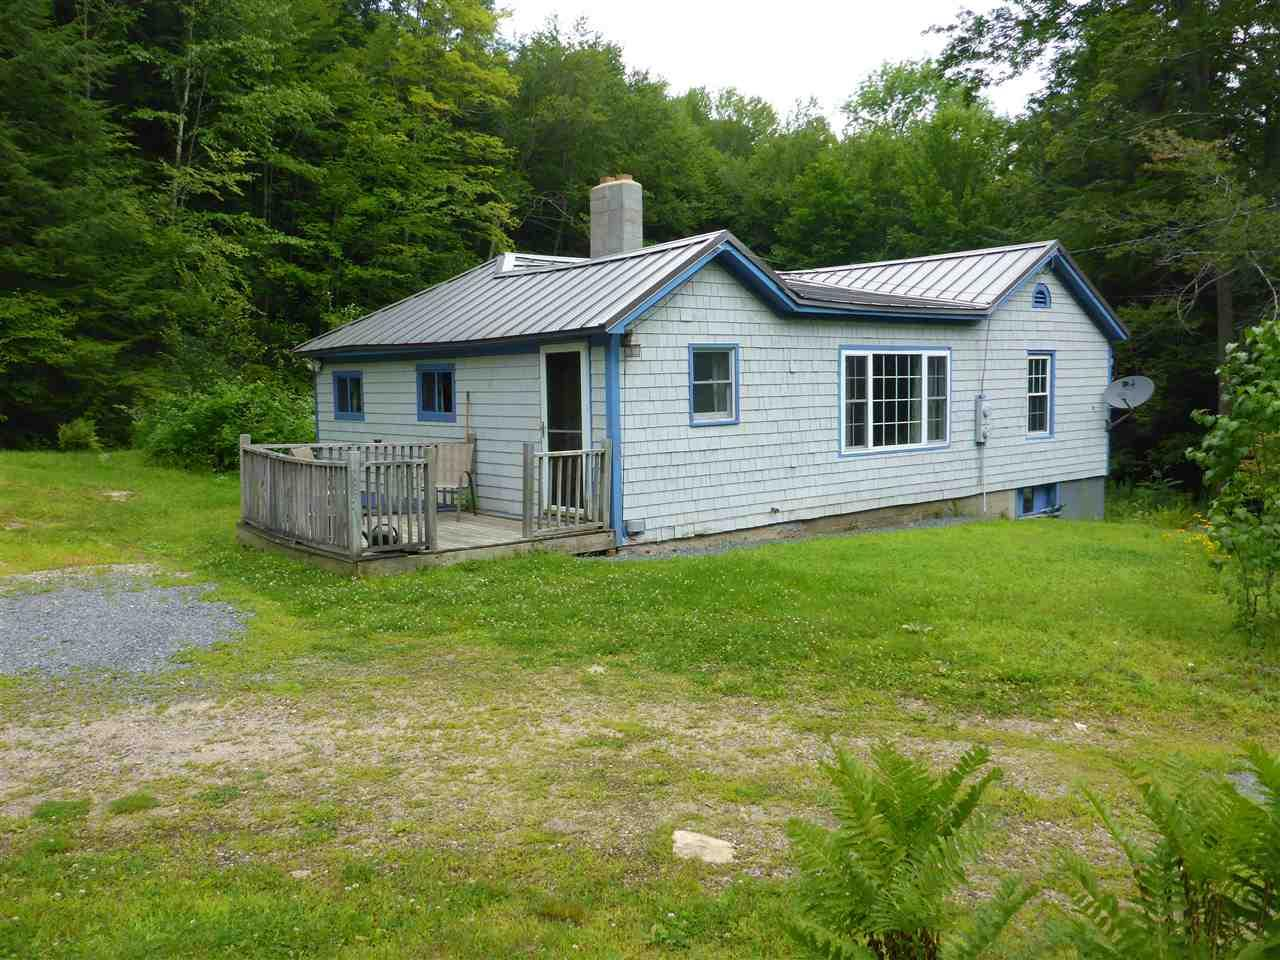 411 Chesterfield Rd Keene Nh Mls 4652378 Better Homes And Gardens Real Estate